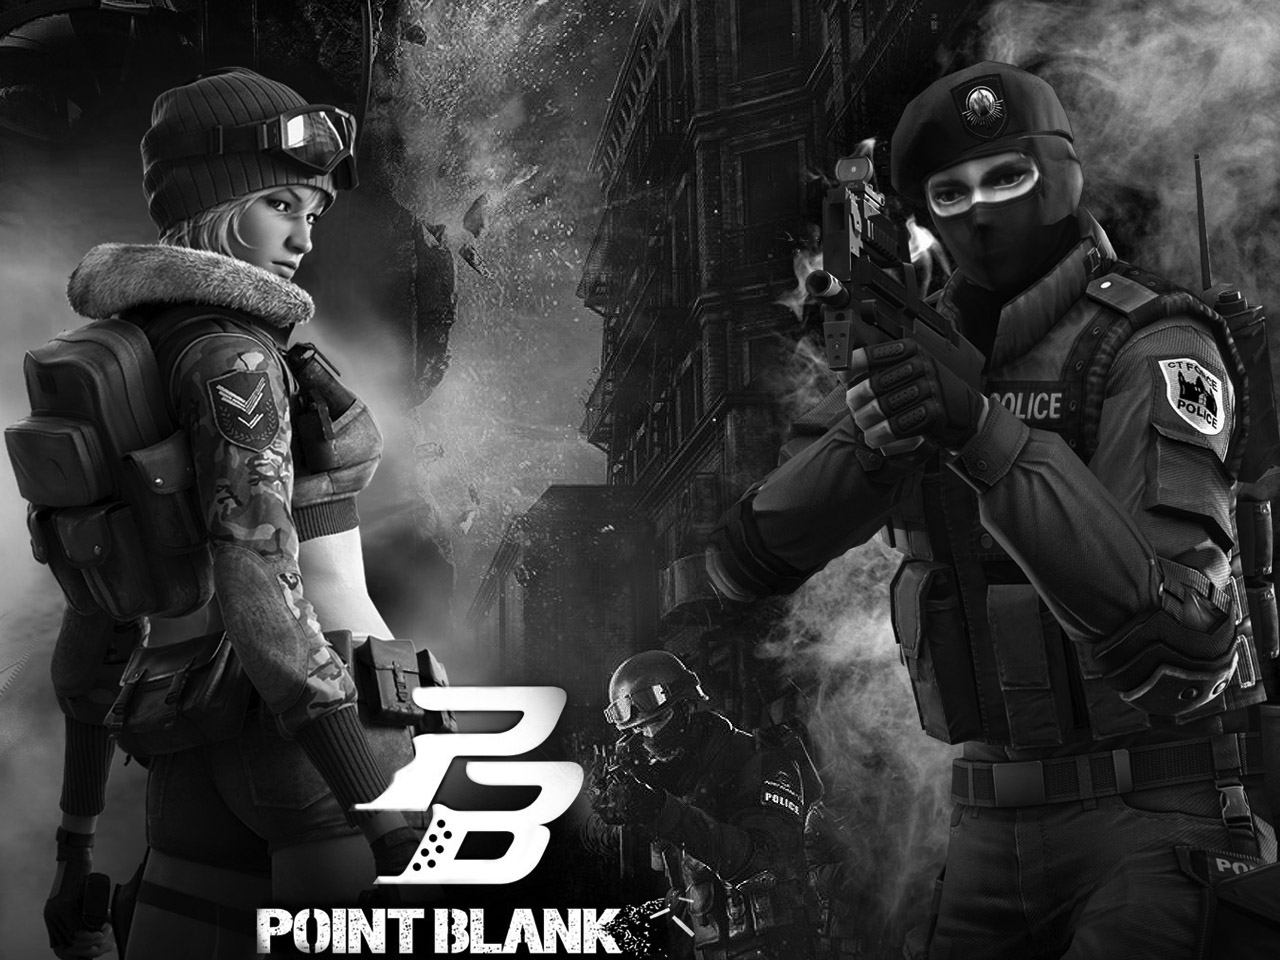 Wallpaper Point Blank Gemscool Indonesia Online